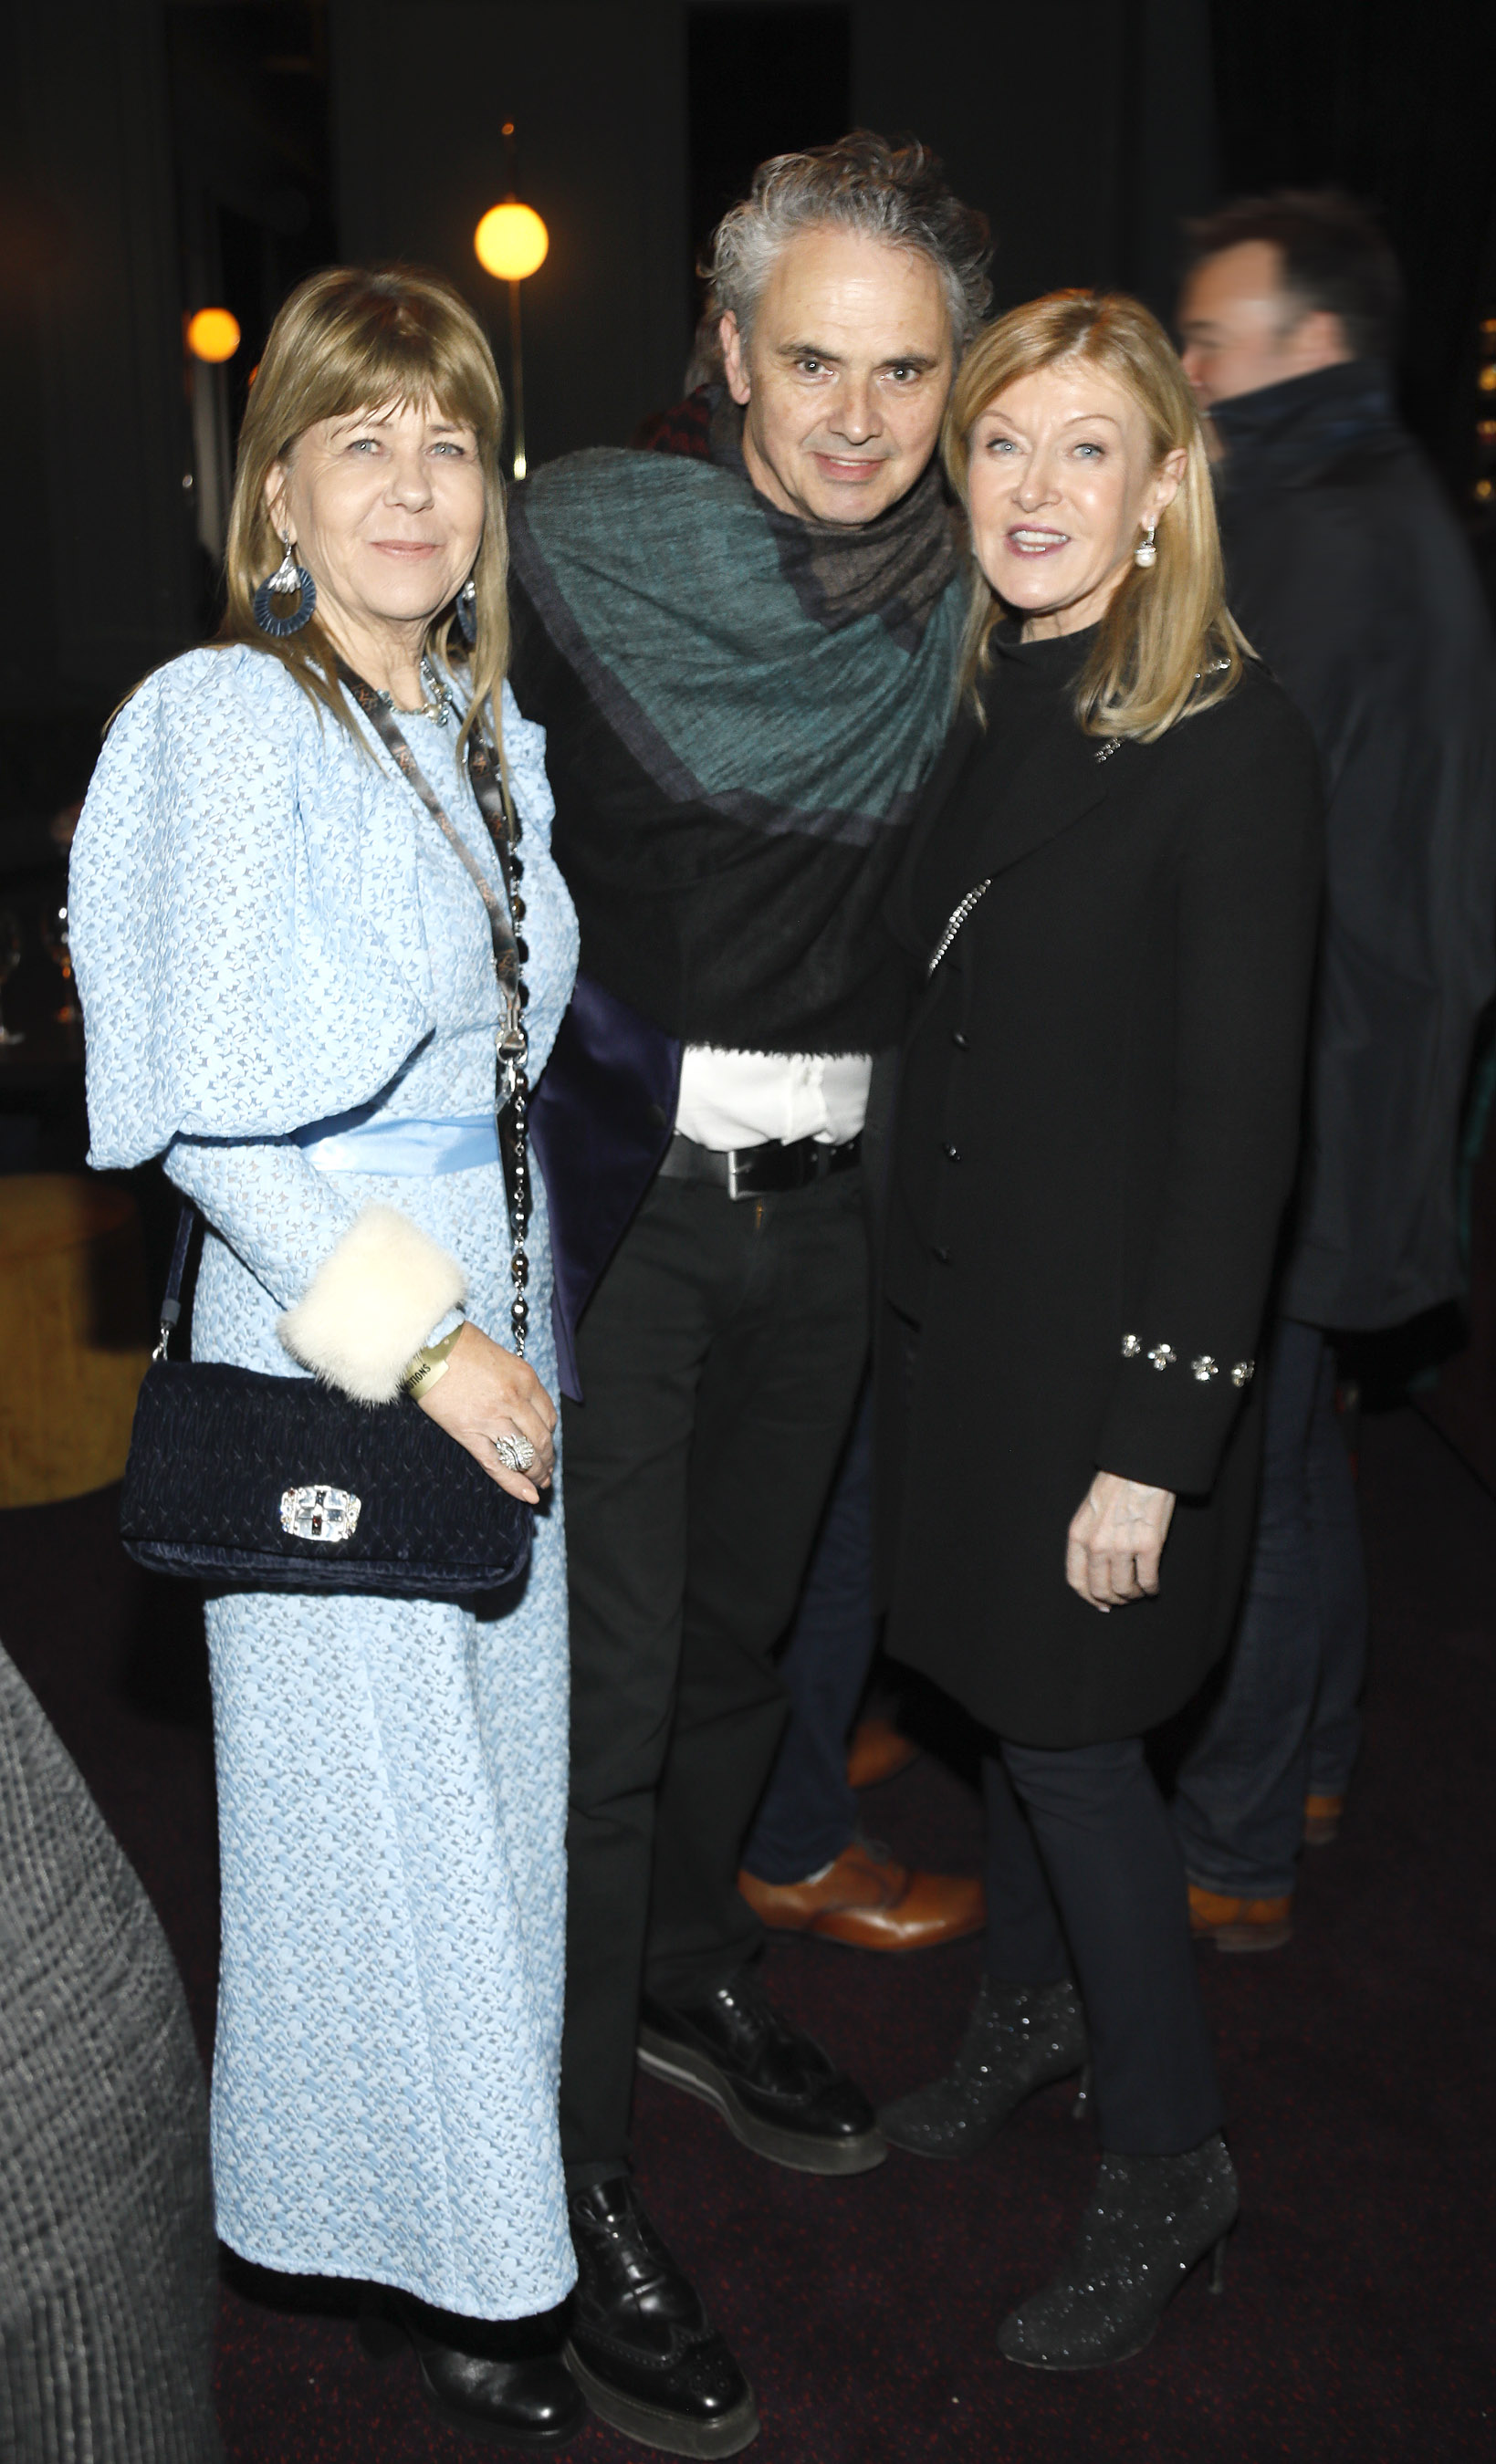 Gerardine Connolly, Patrick O'Reilly and Louise Kennedy at the historic gala performance of Riverdance 25th Anniversary show at 3Arena Dublin exactly 25 years to the day that Riverdance was first performed at the Point Depot.  Photo: Kieran Harnett